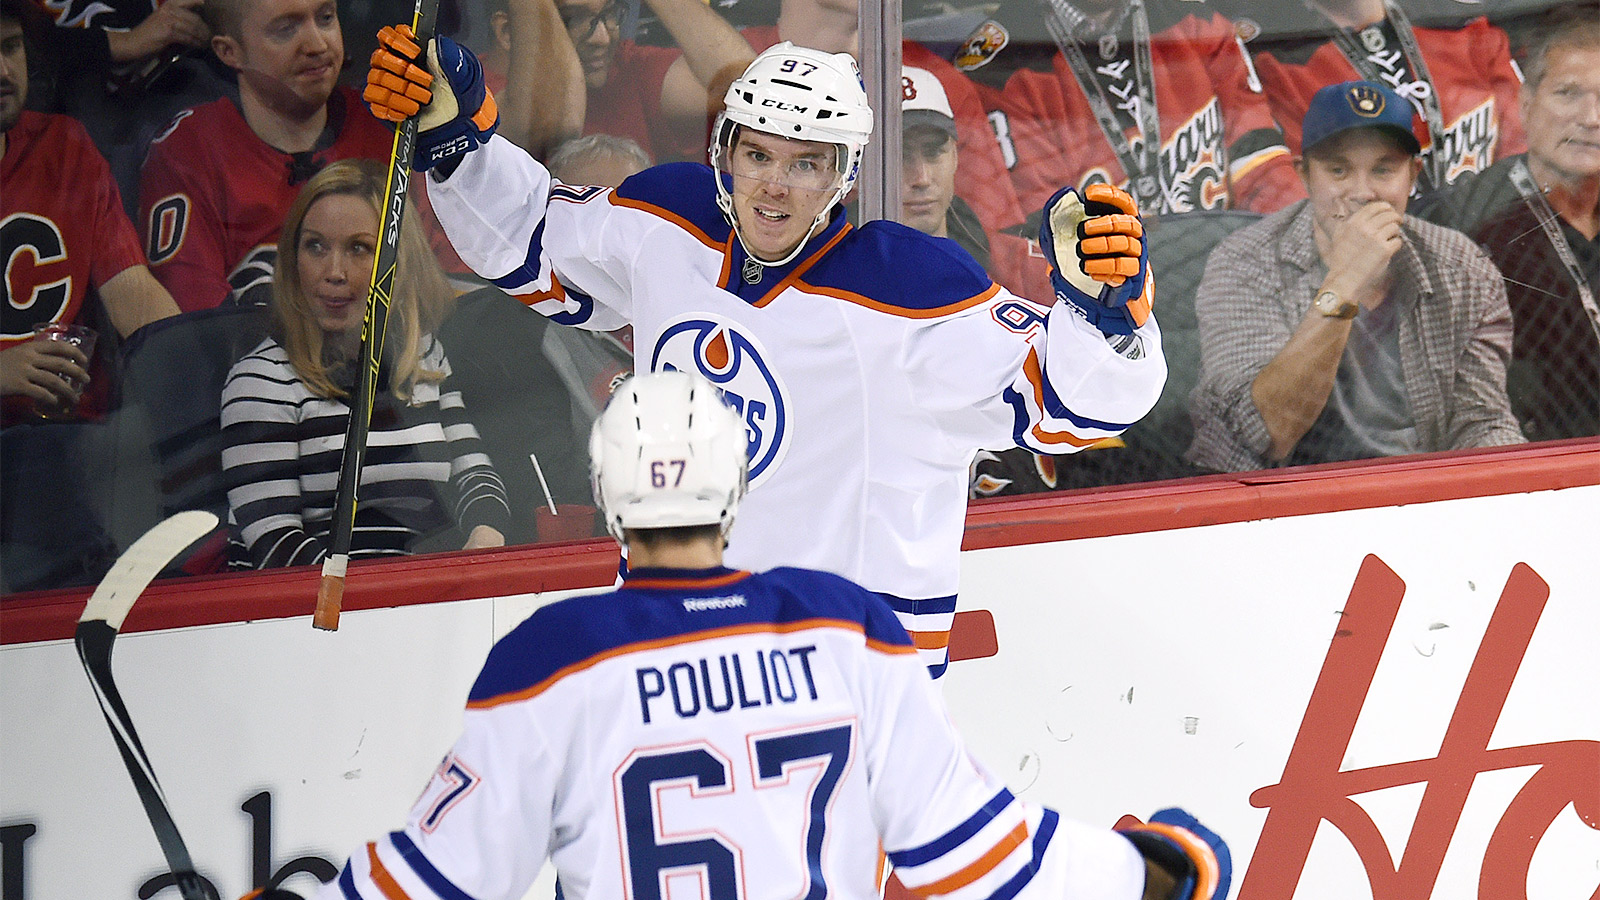 Connor McDavid scores twice, totals 3 points in Oilers' first win